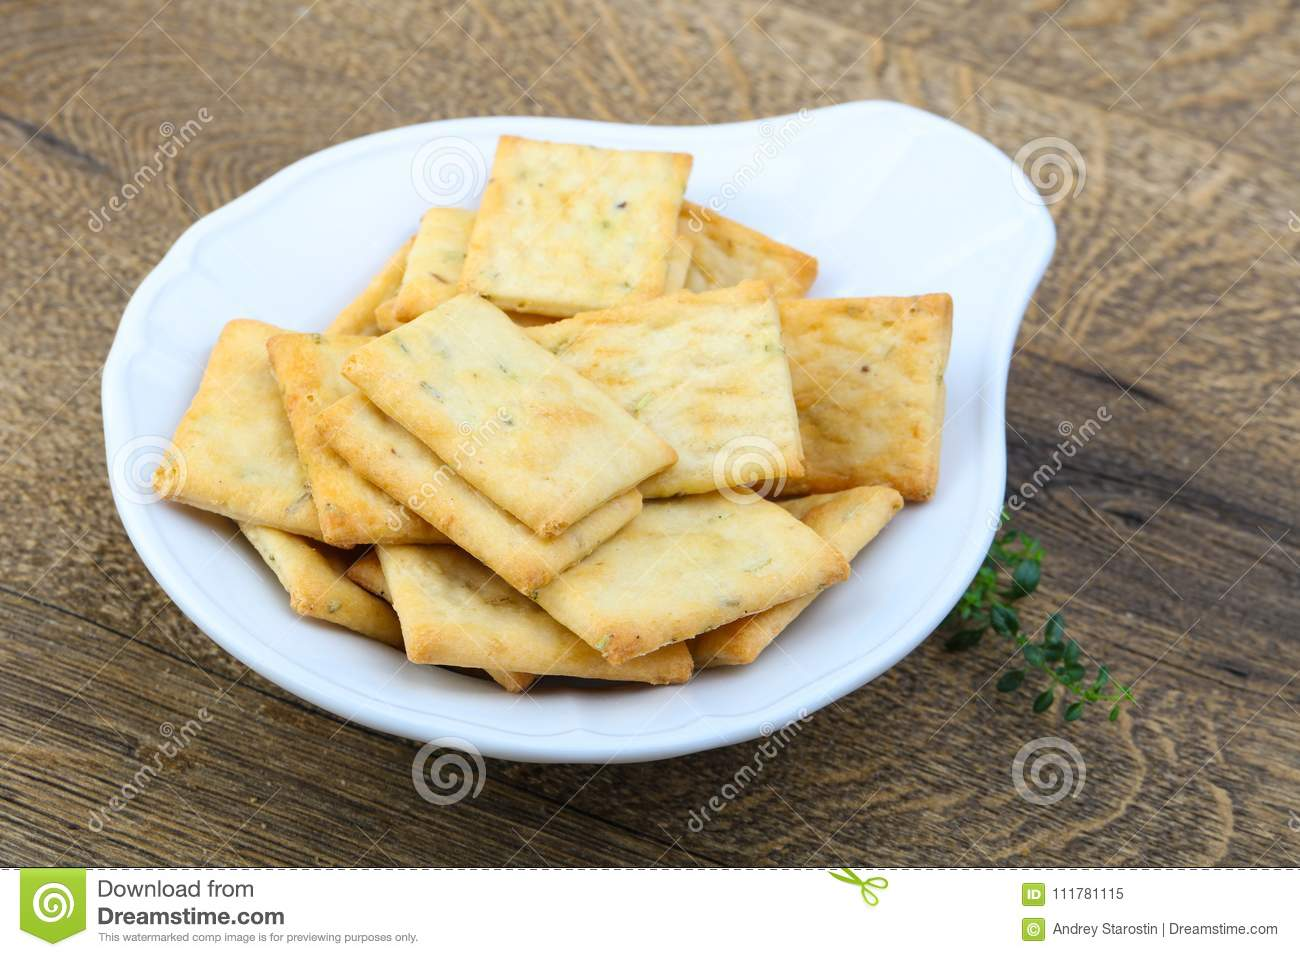 Crackers in the bowl